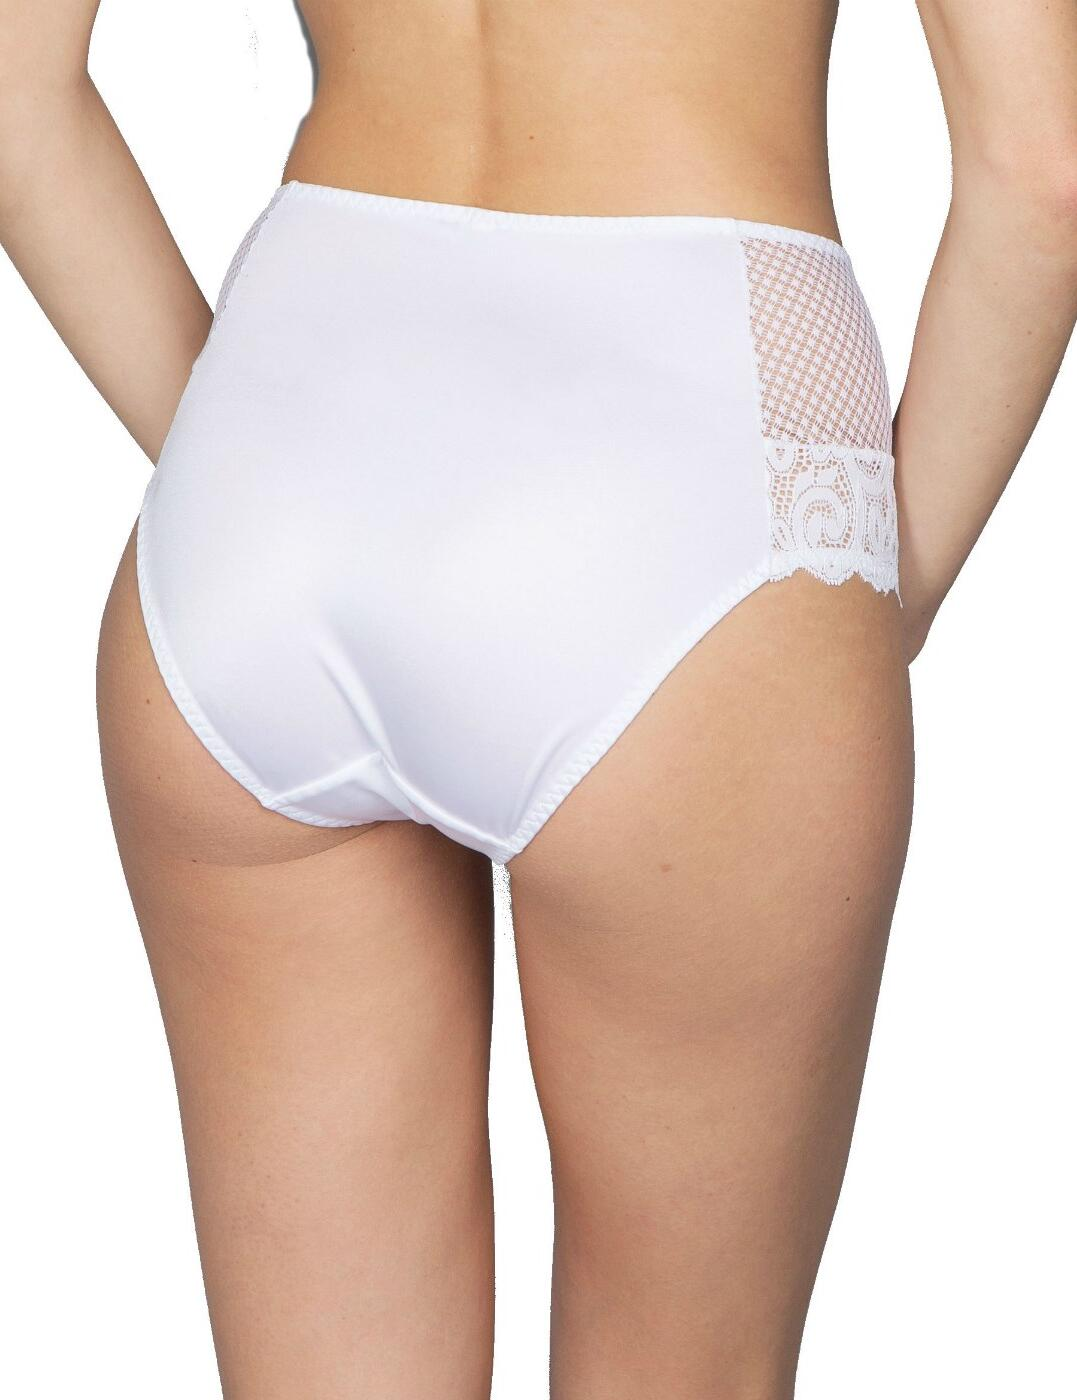 Maison-Lejaby-Gaby-High-Waist-Brief-13864-Luxury-Lingerie-Womens-Knickers thumbnail 8